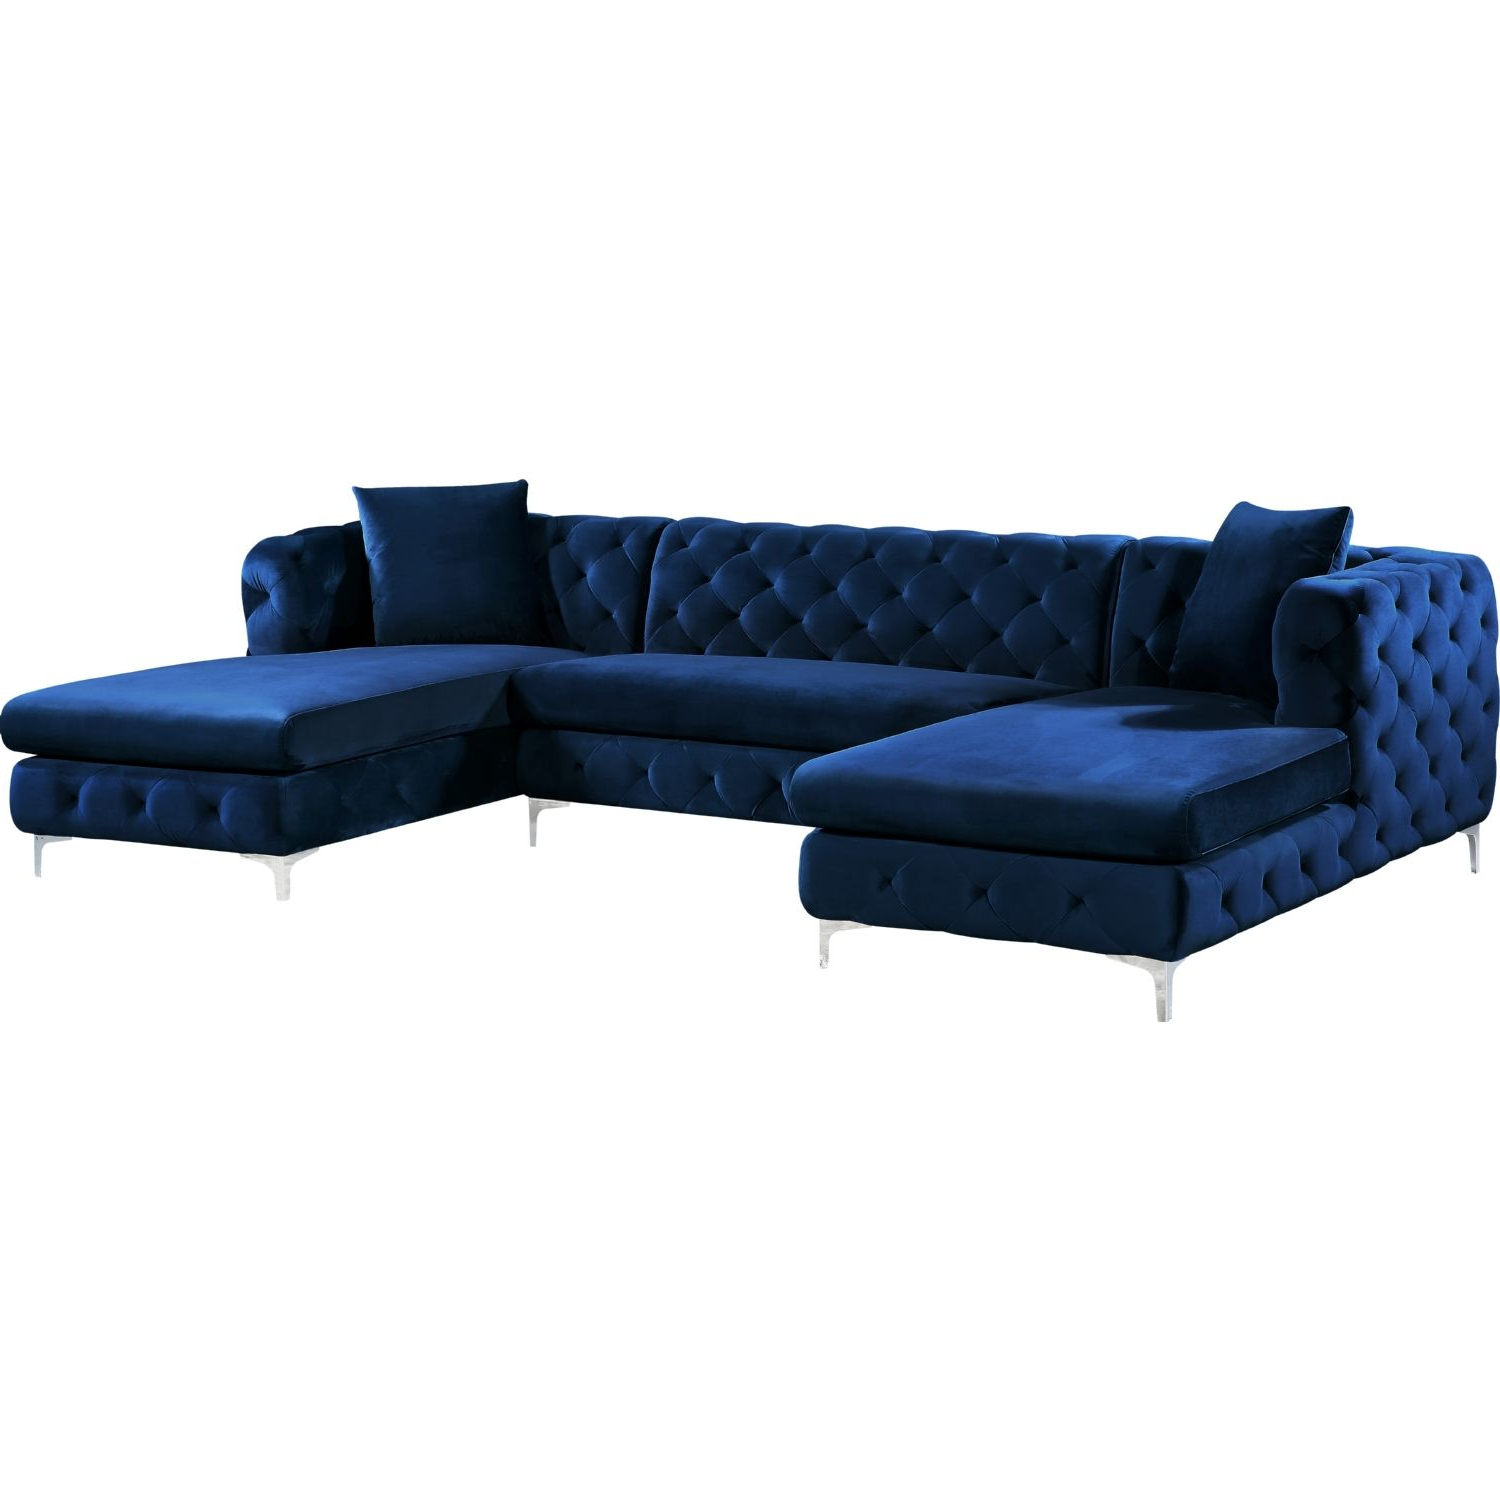 Meridian Furniture 664navy Sectional Gail 3 Piece Double For Most Recent 3pc Miles Leather Sectional Sofas With Chaise (View 19 of 20)